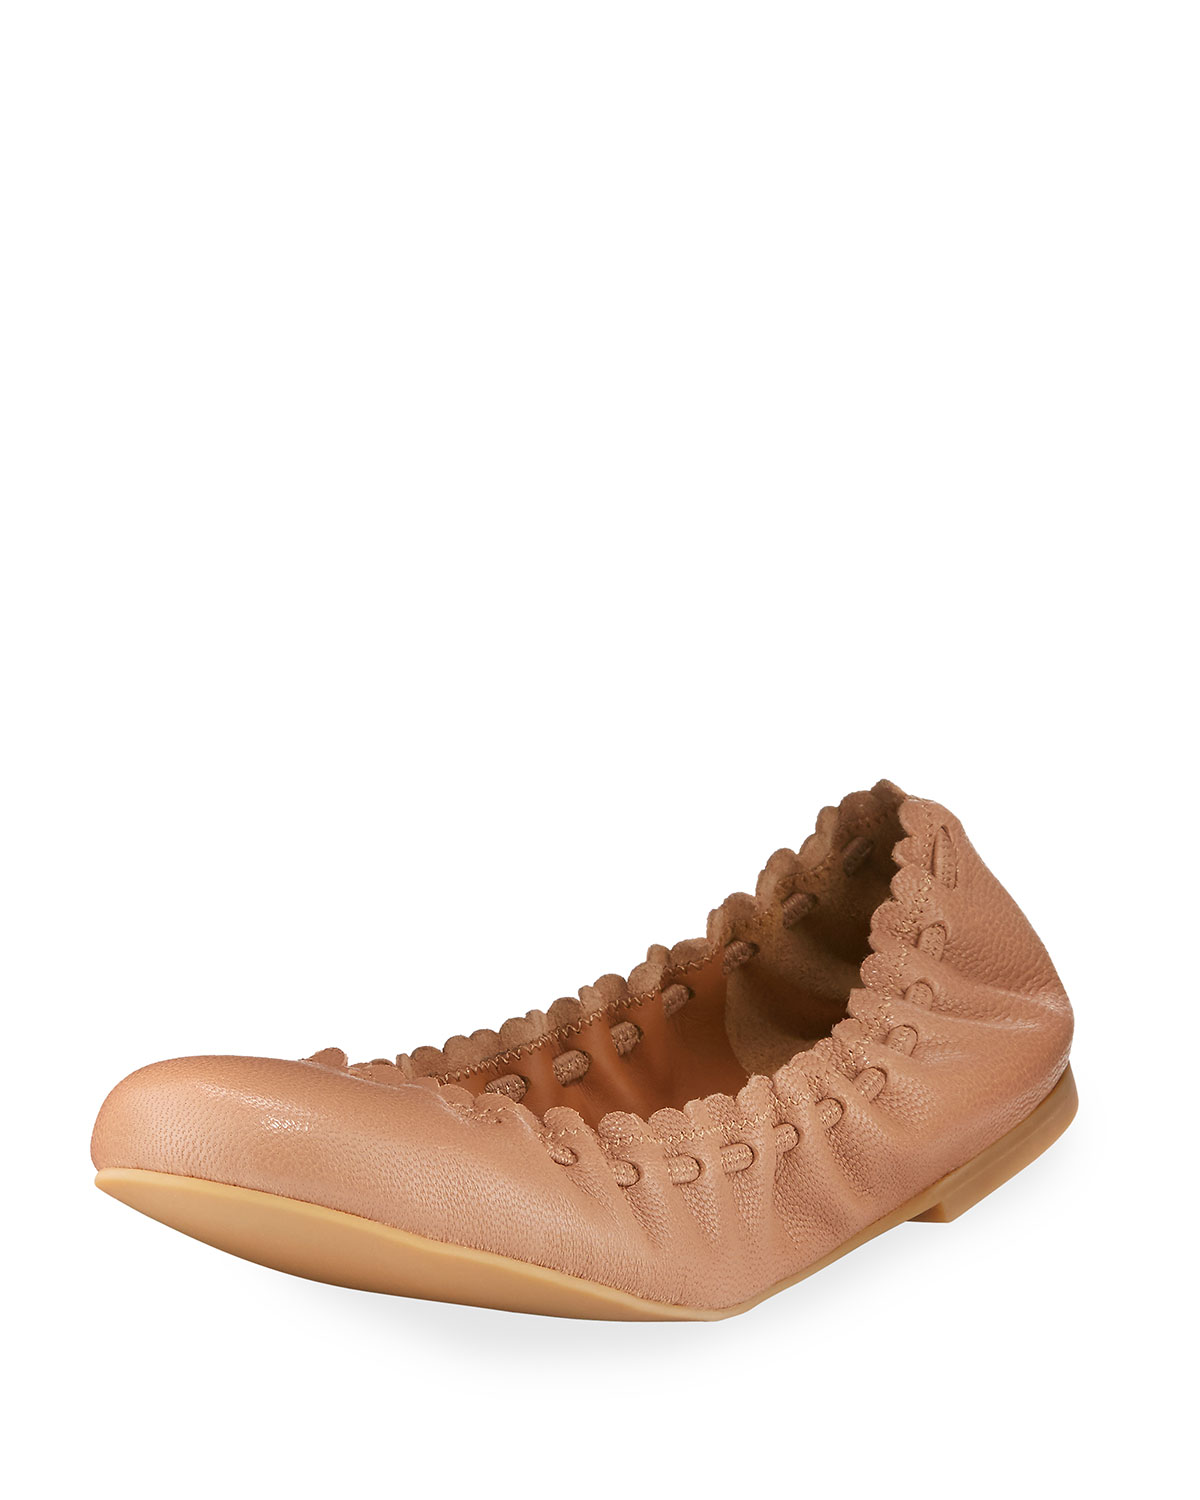 See By Chloe Jane Scalloped Ballet Flat, Biscotto Nude  Neiman Marcus-9642